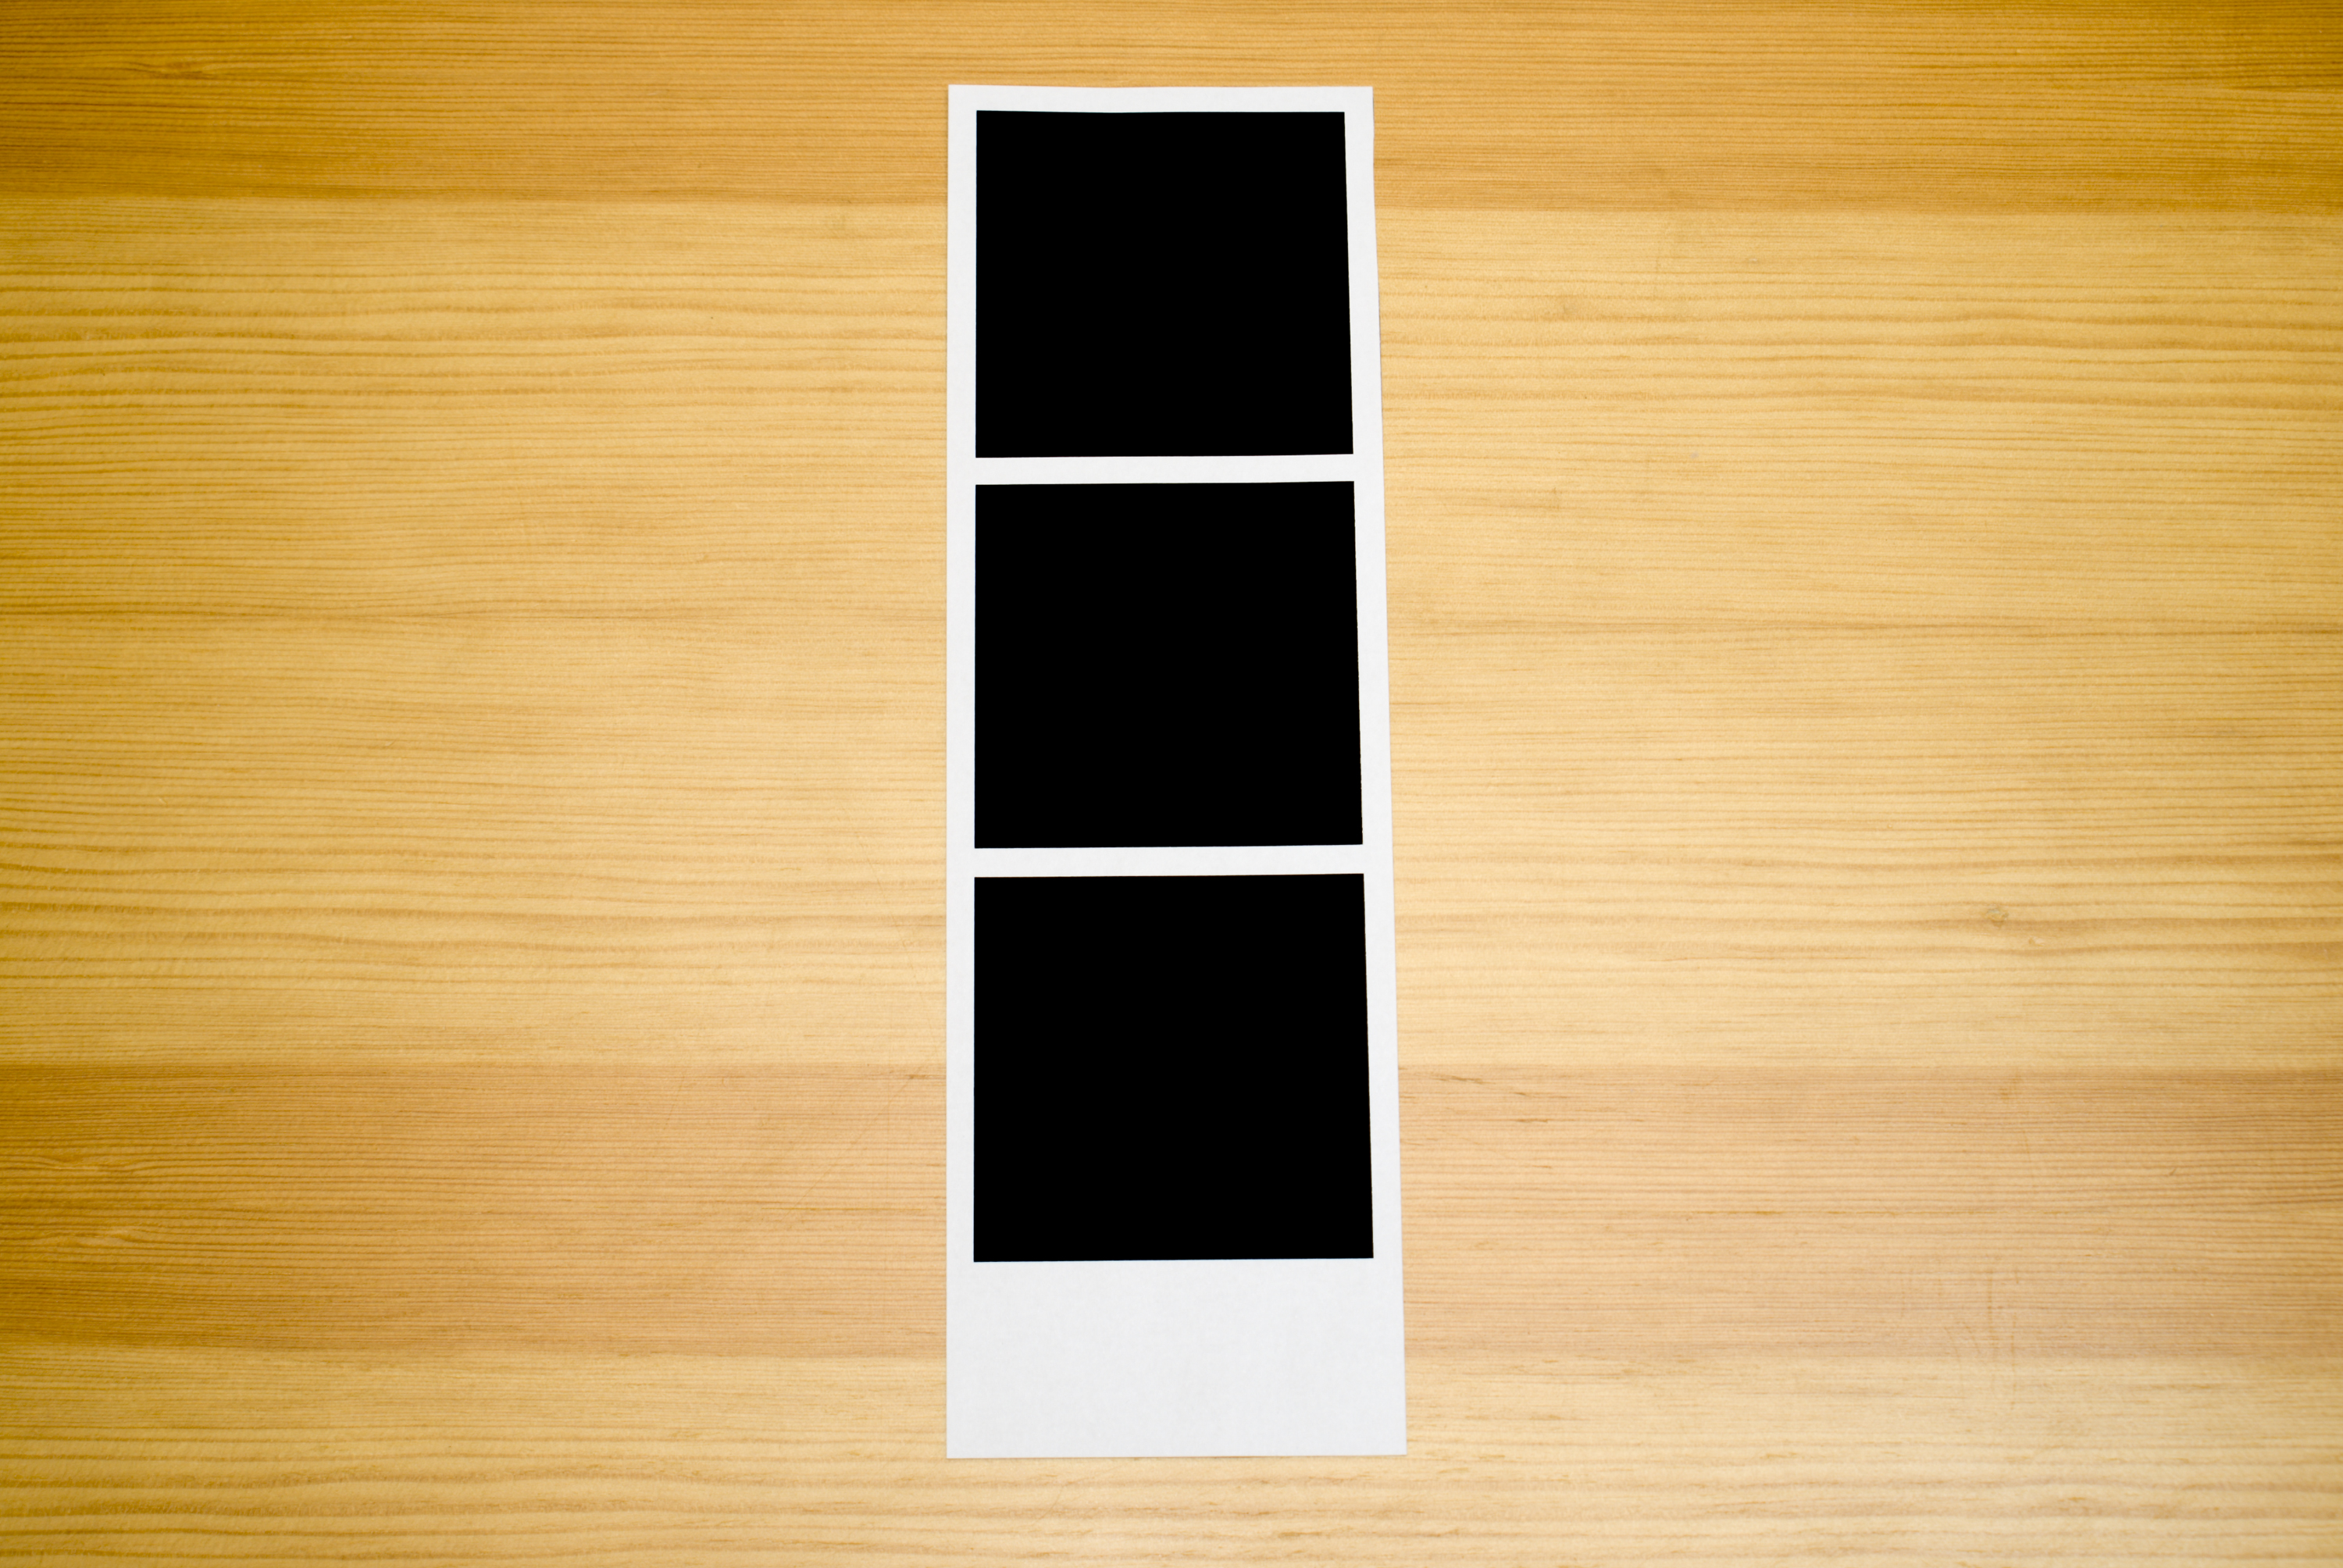 Blank strip of instant photos, can be used in design, add the images you'd like to see.